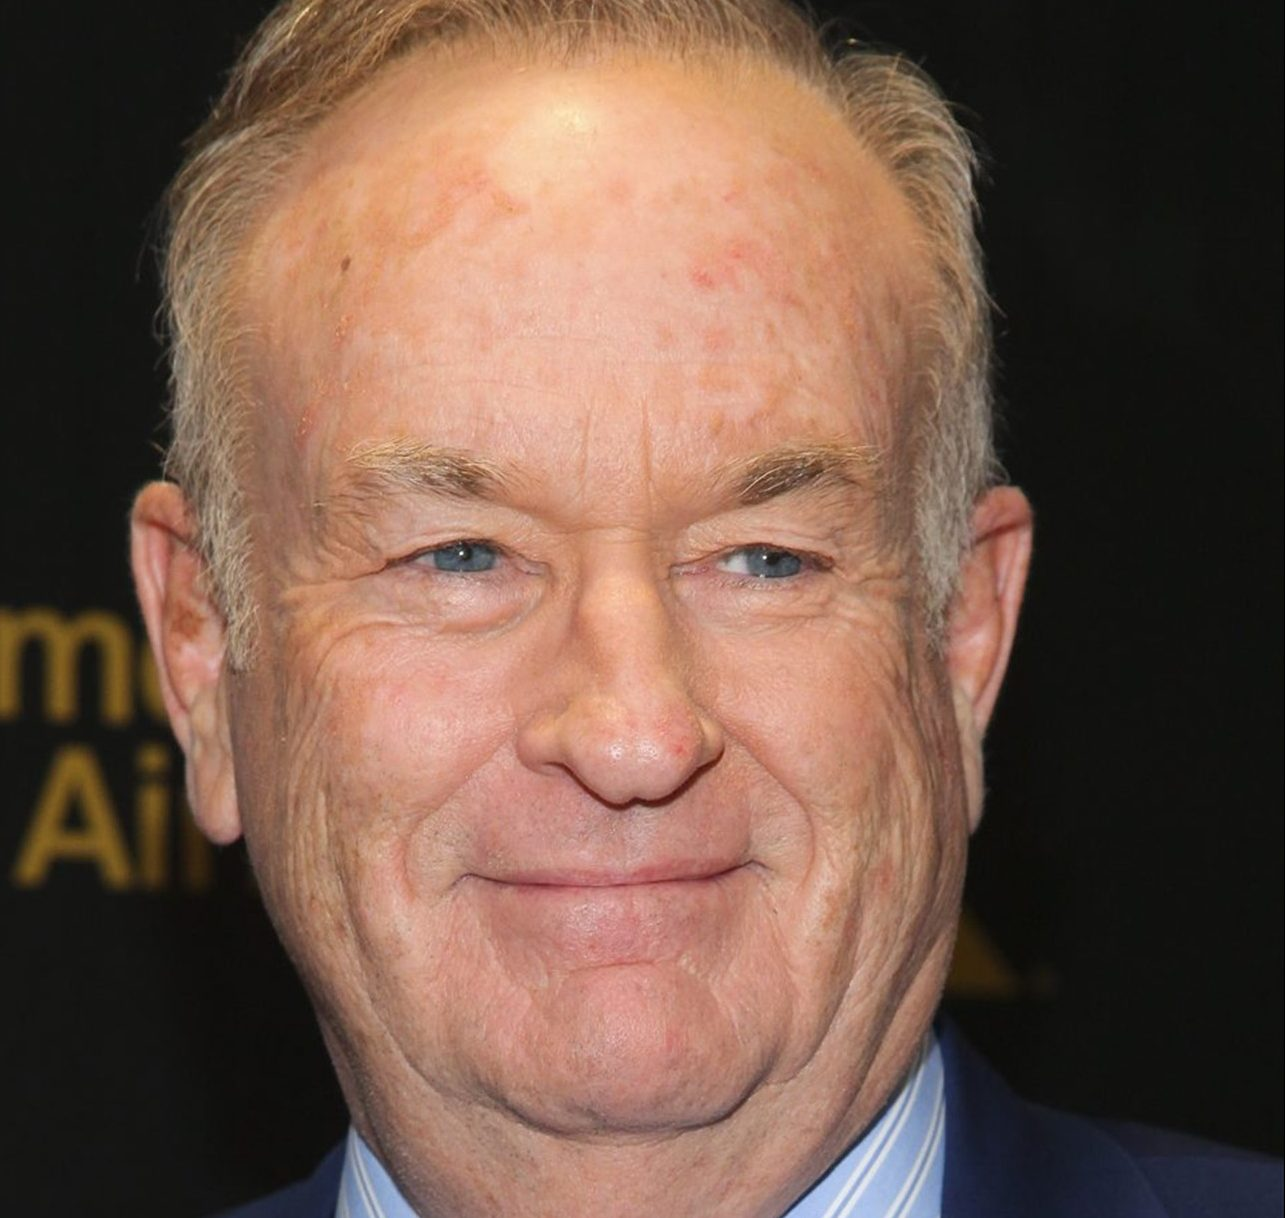 Bill O'Reilly denies harassment allegations after losing job at Fox News